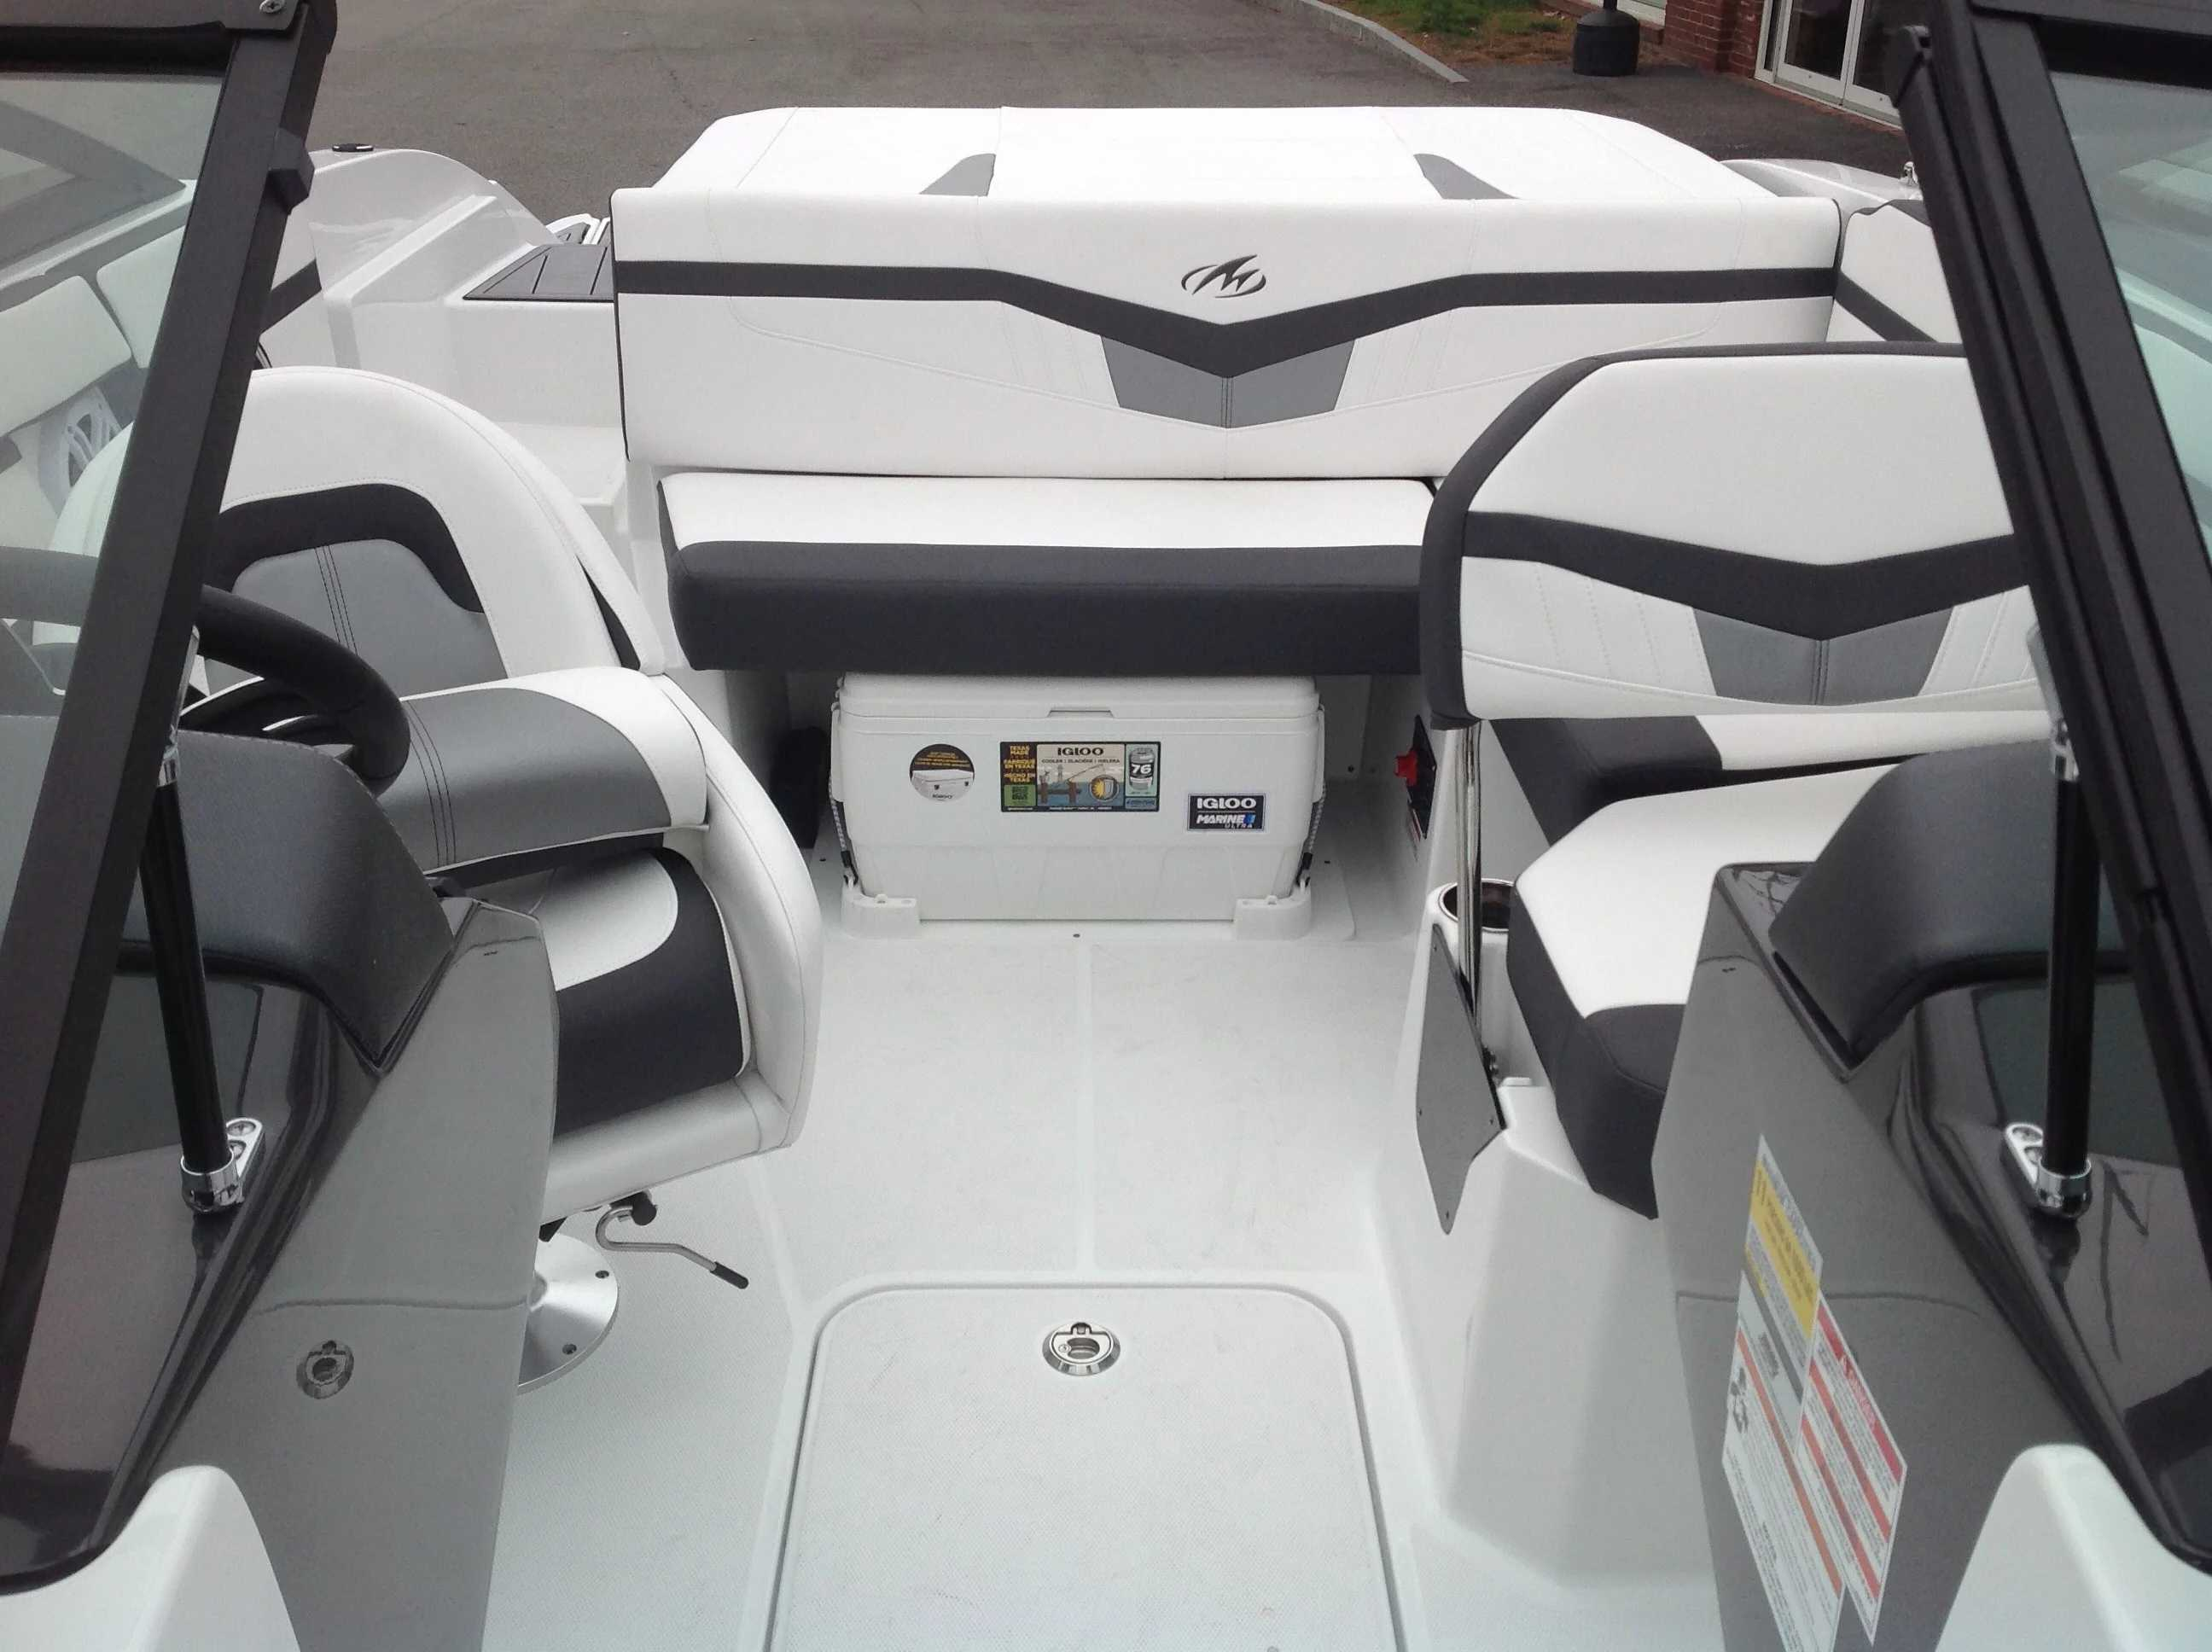 2021 Monterey boat for sale, model of the boat is M20 & Image # 4 of 13